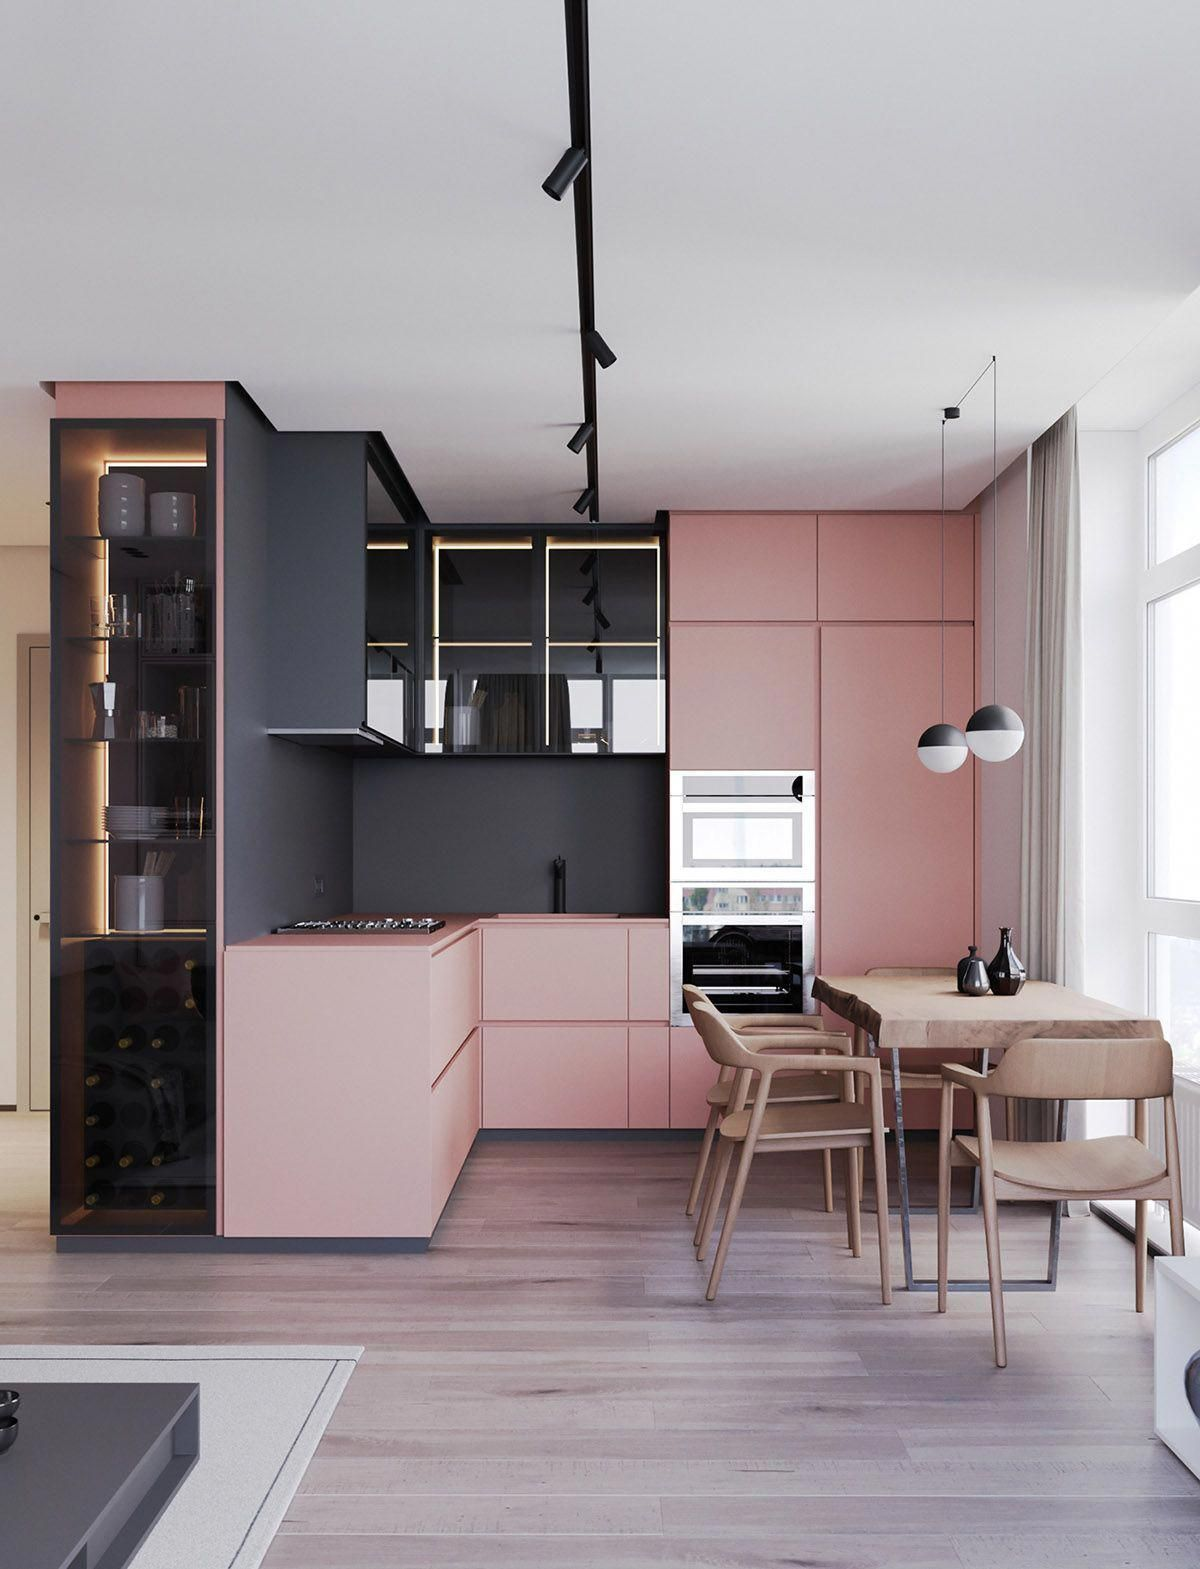 Amazing kitchen interior design remodel if you  ve the small kitchenthen will end up wise when decide ideal ideas for also rh pinterest